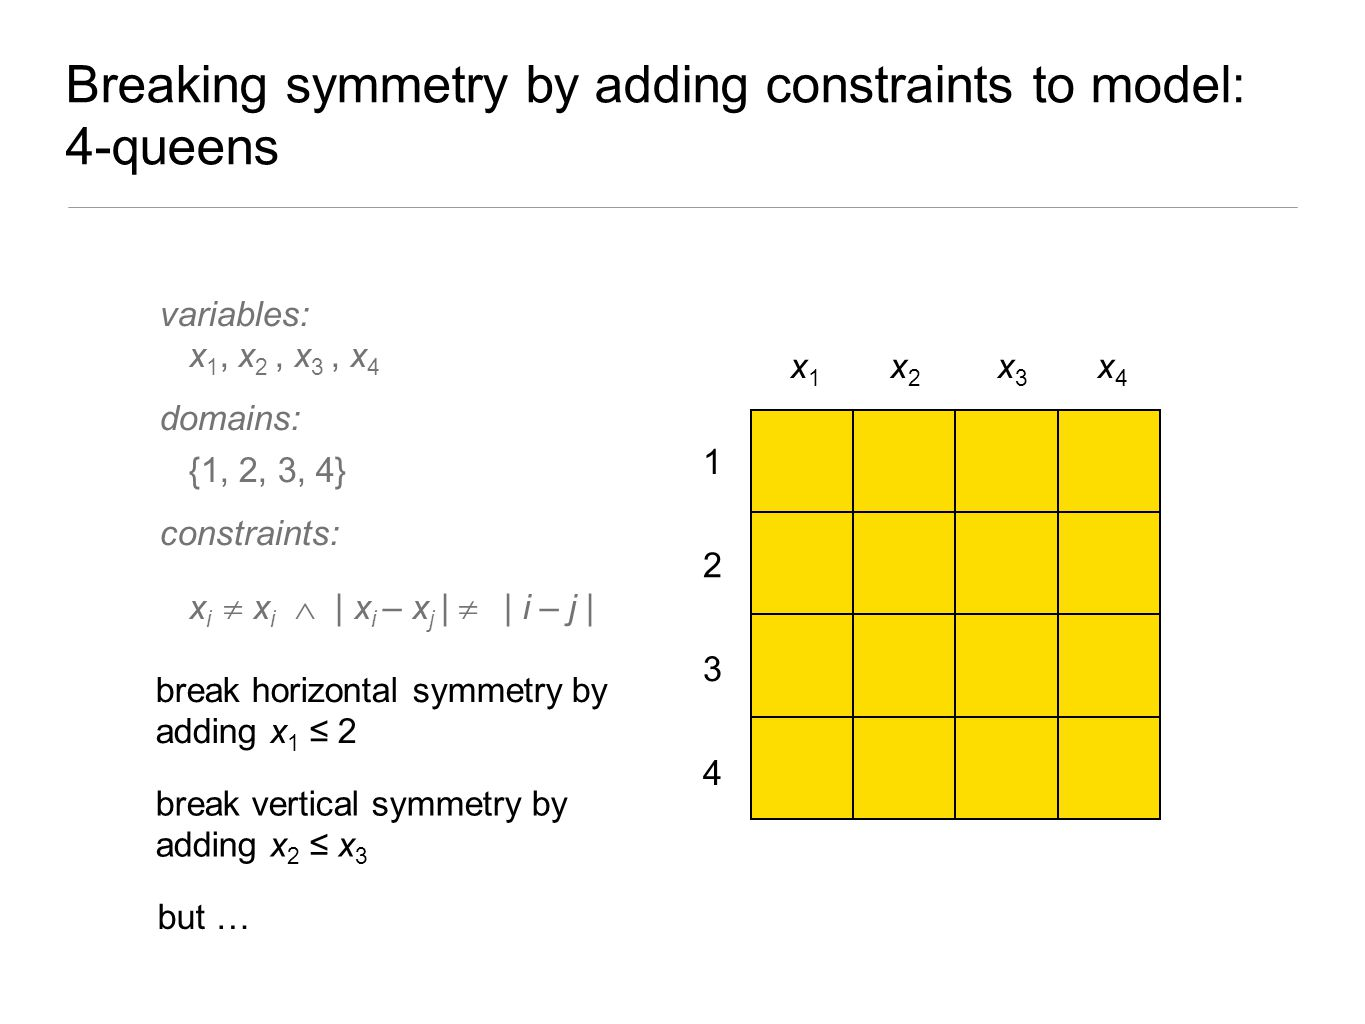 Breaking symmetry by adding constraints to model: 4-queens